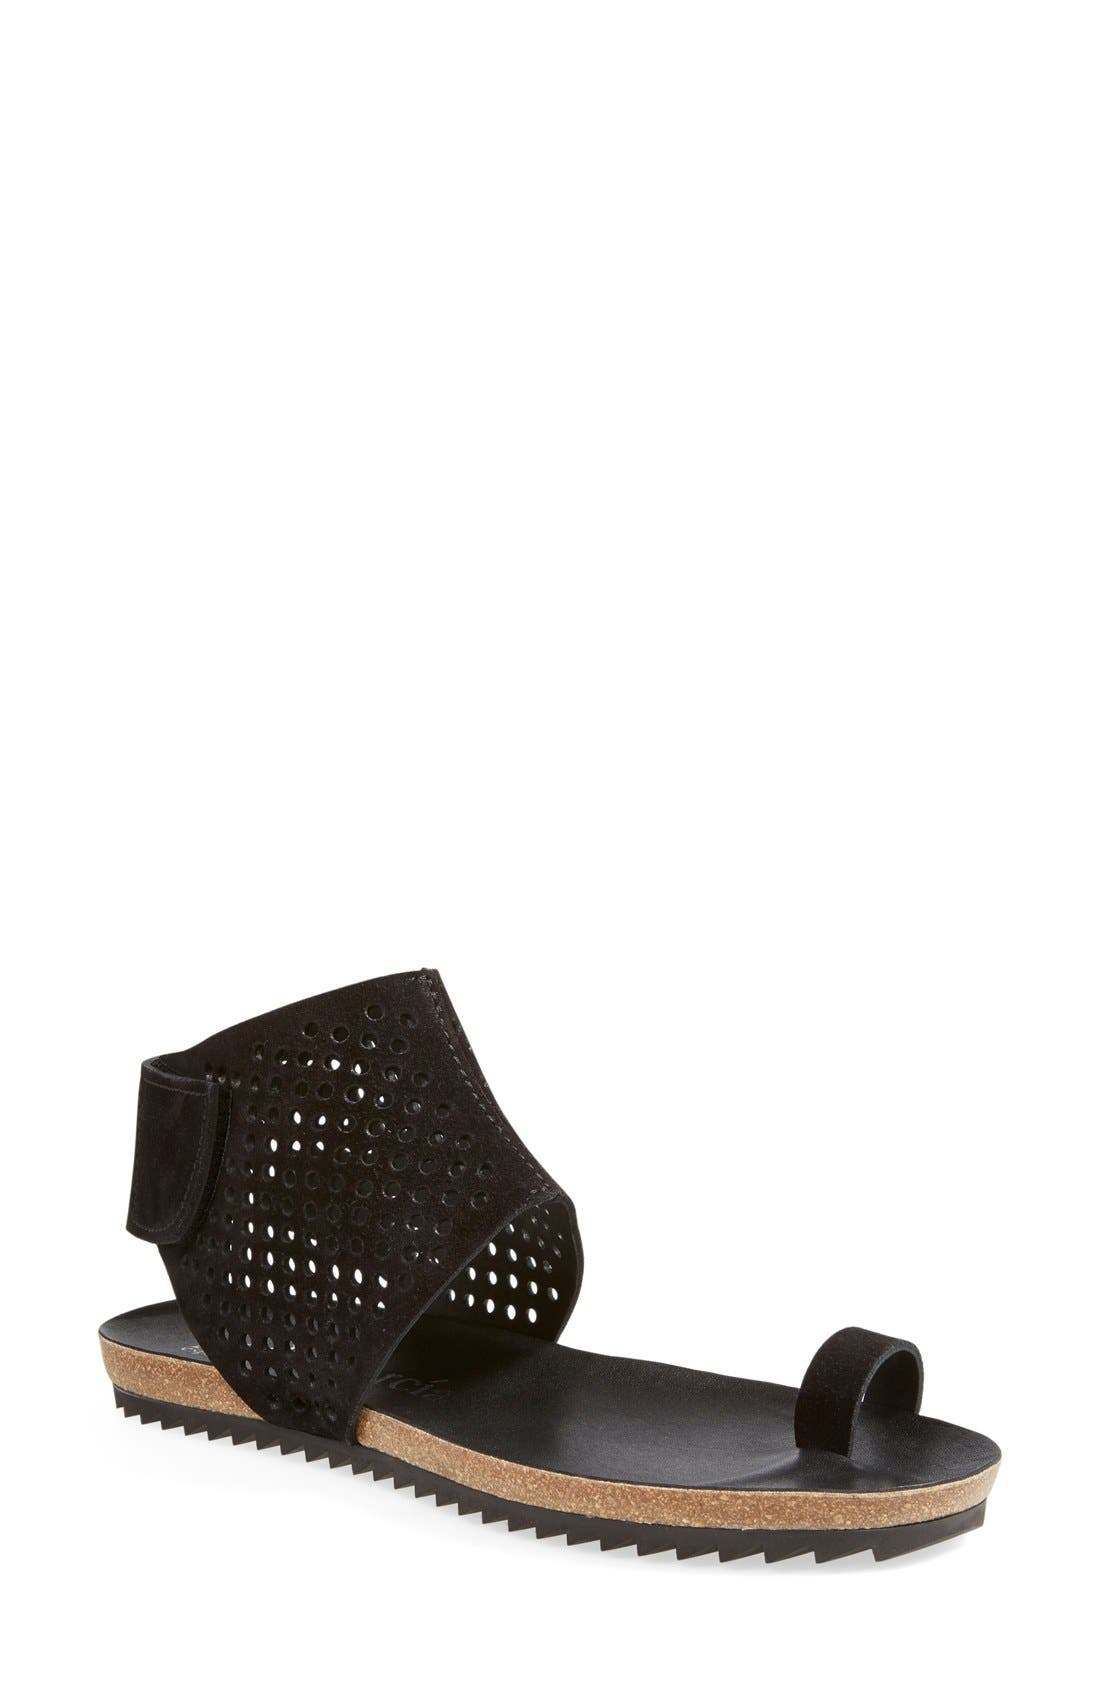 Alternate Image 1 Selected - Pedro Garcia Perforated Ankle Cuff Sandal (Women)